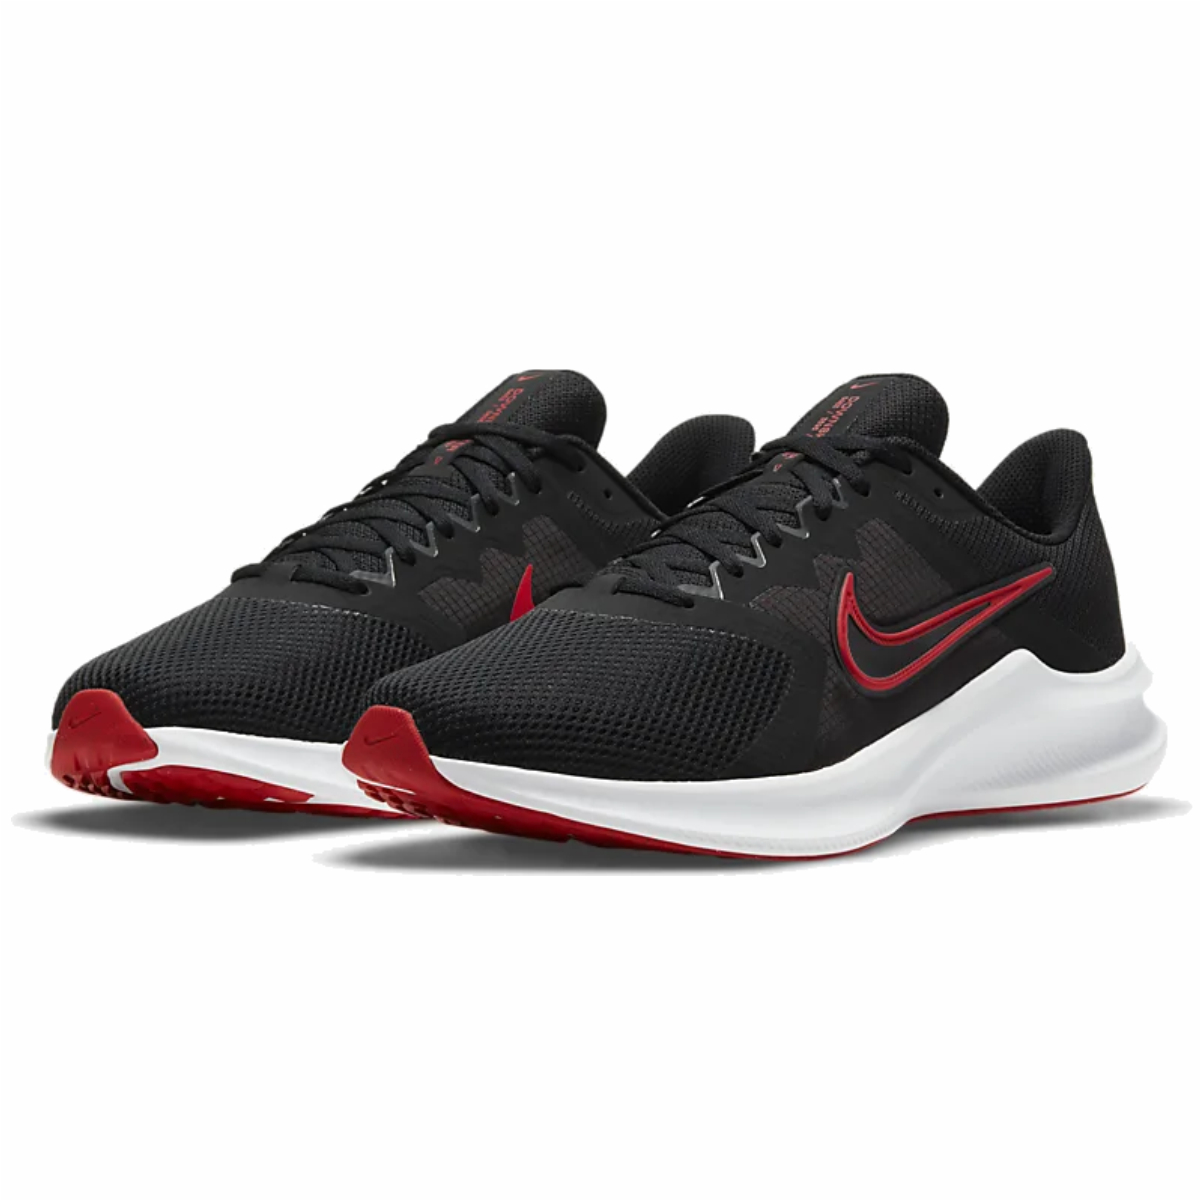 Tenis Nike Downshifter 11 Masculino Running Training